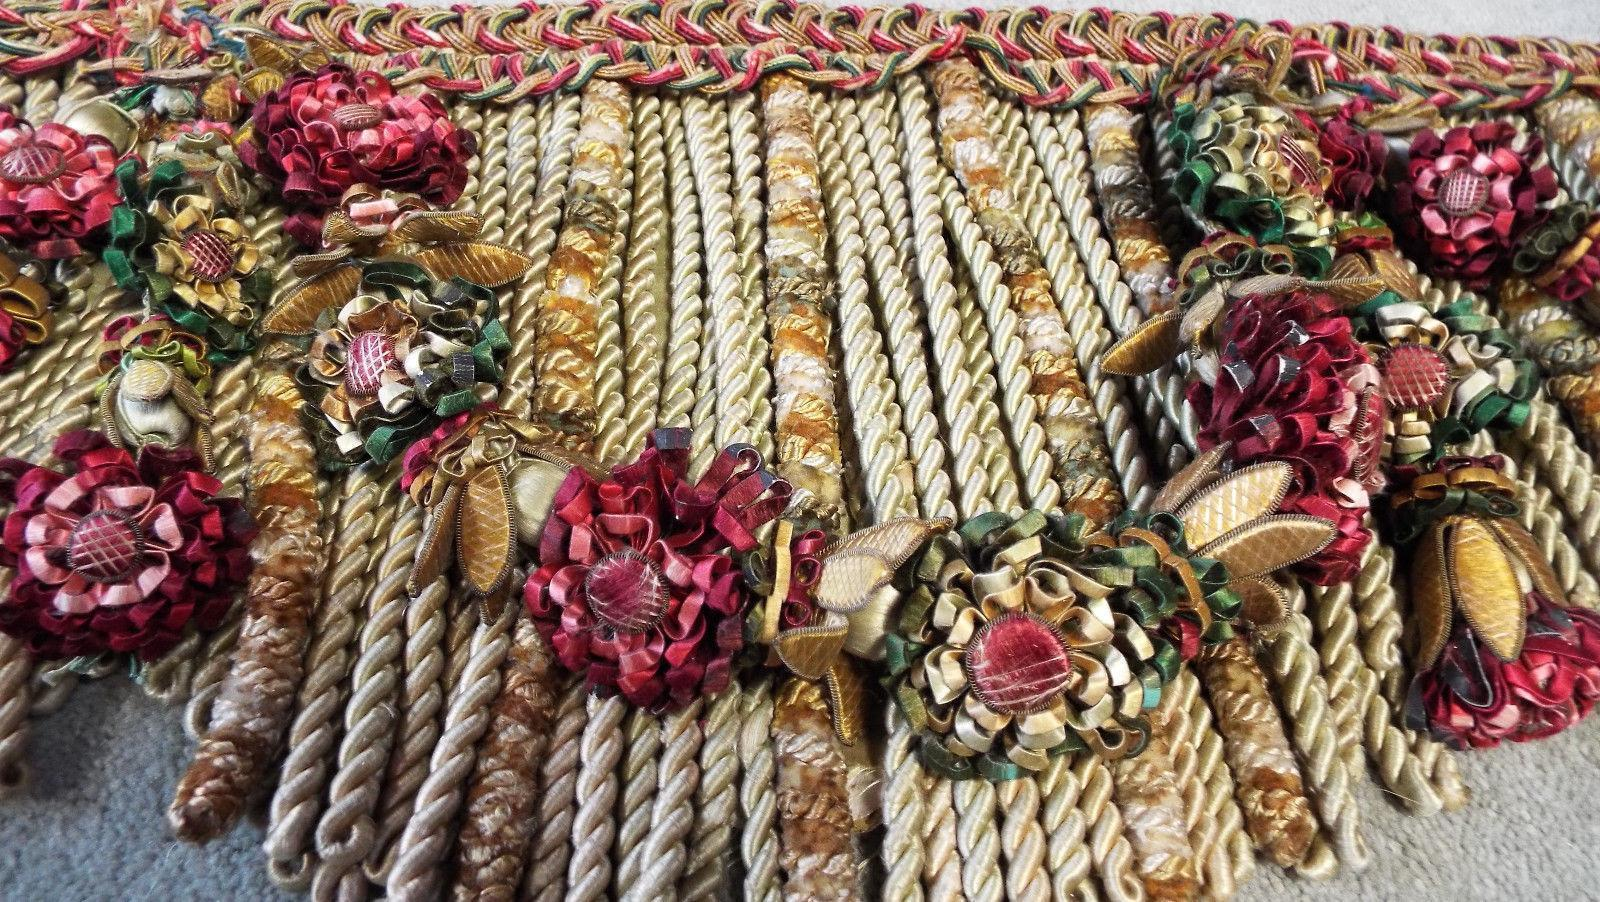 Beautiful Antique French Chateau Valence Pelmet Hand Made Lyon Silk Wired Flowers Silk Tassels